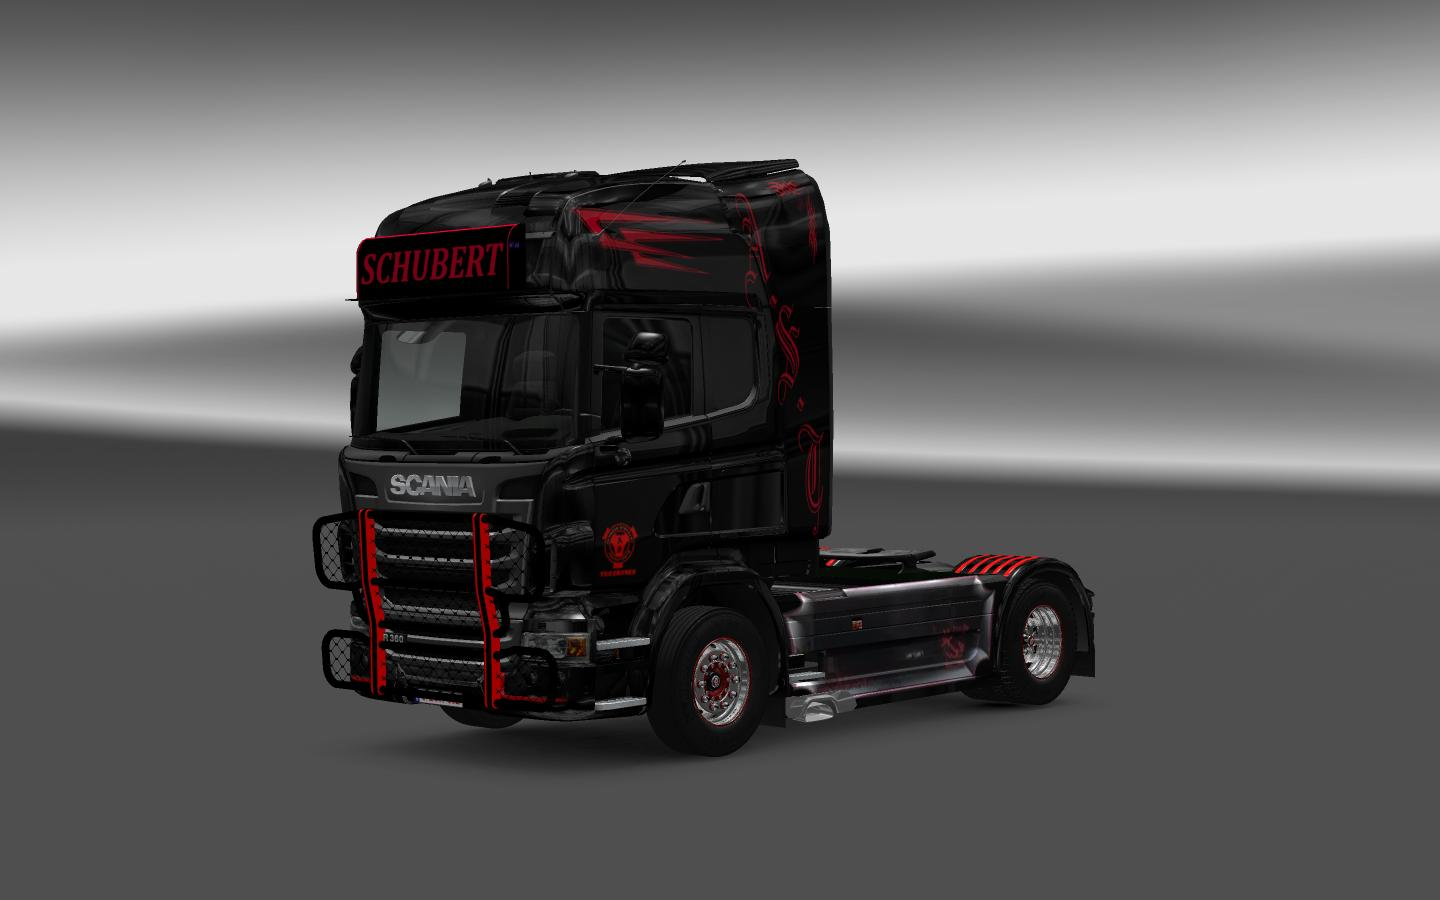 Schubert Skin For All Scania Ets 2 Euro Truck Simulator 2